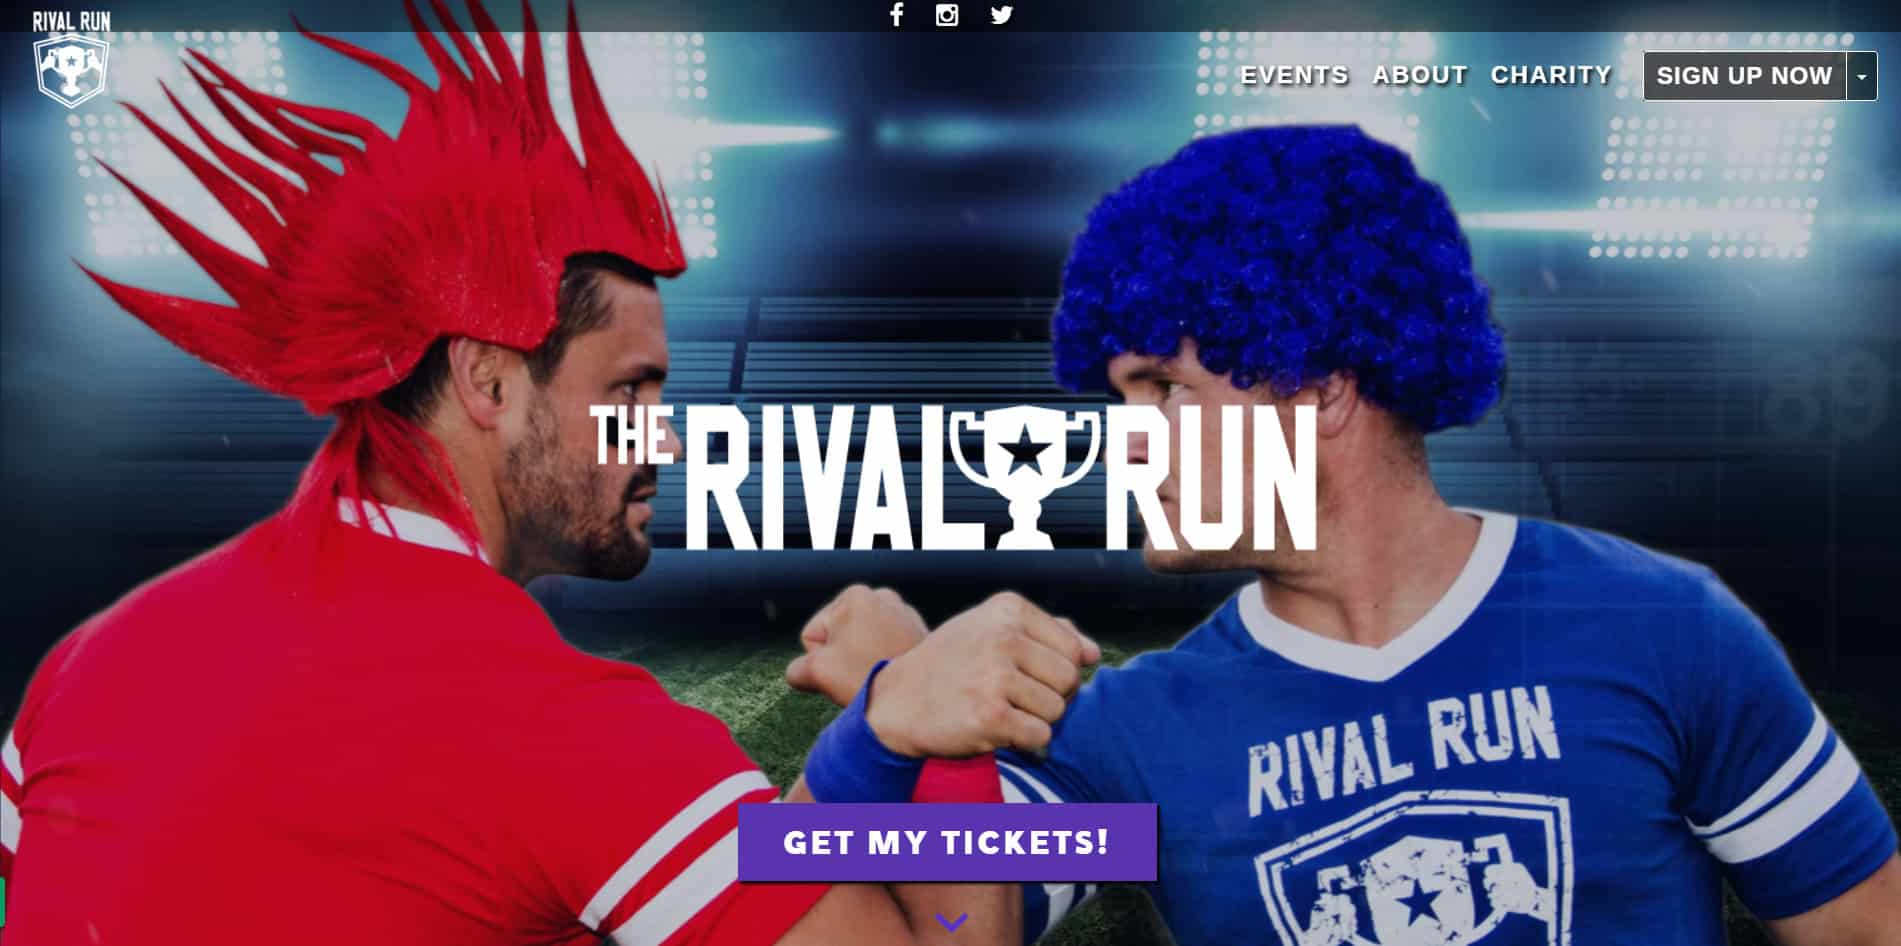 The Rival Run